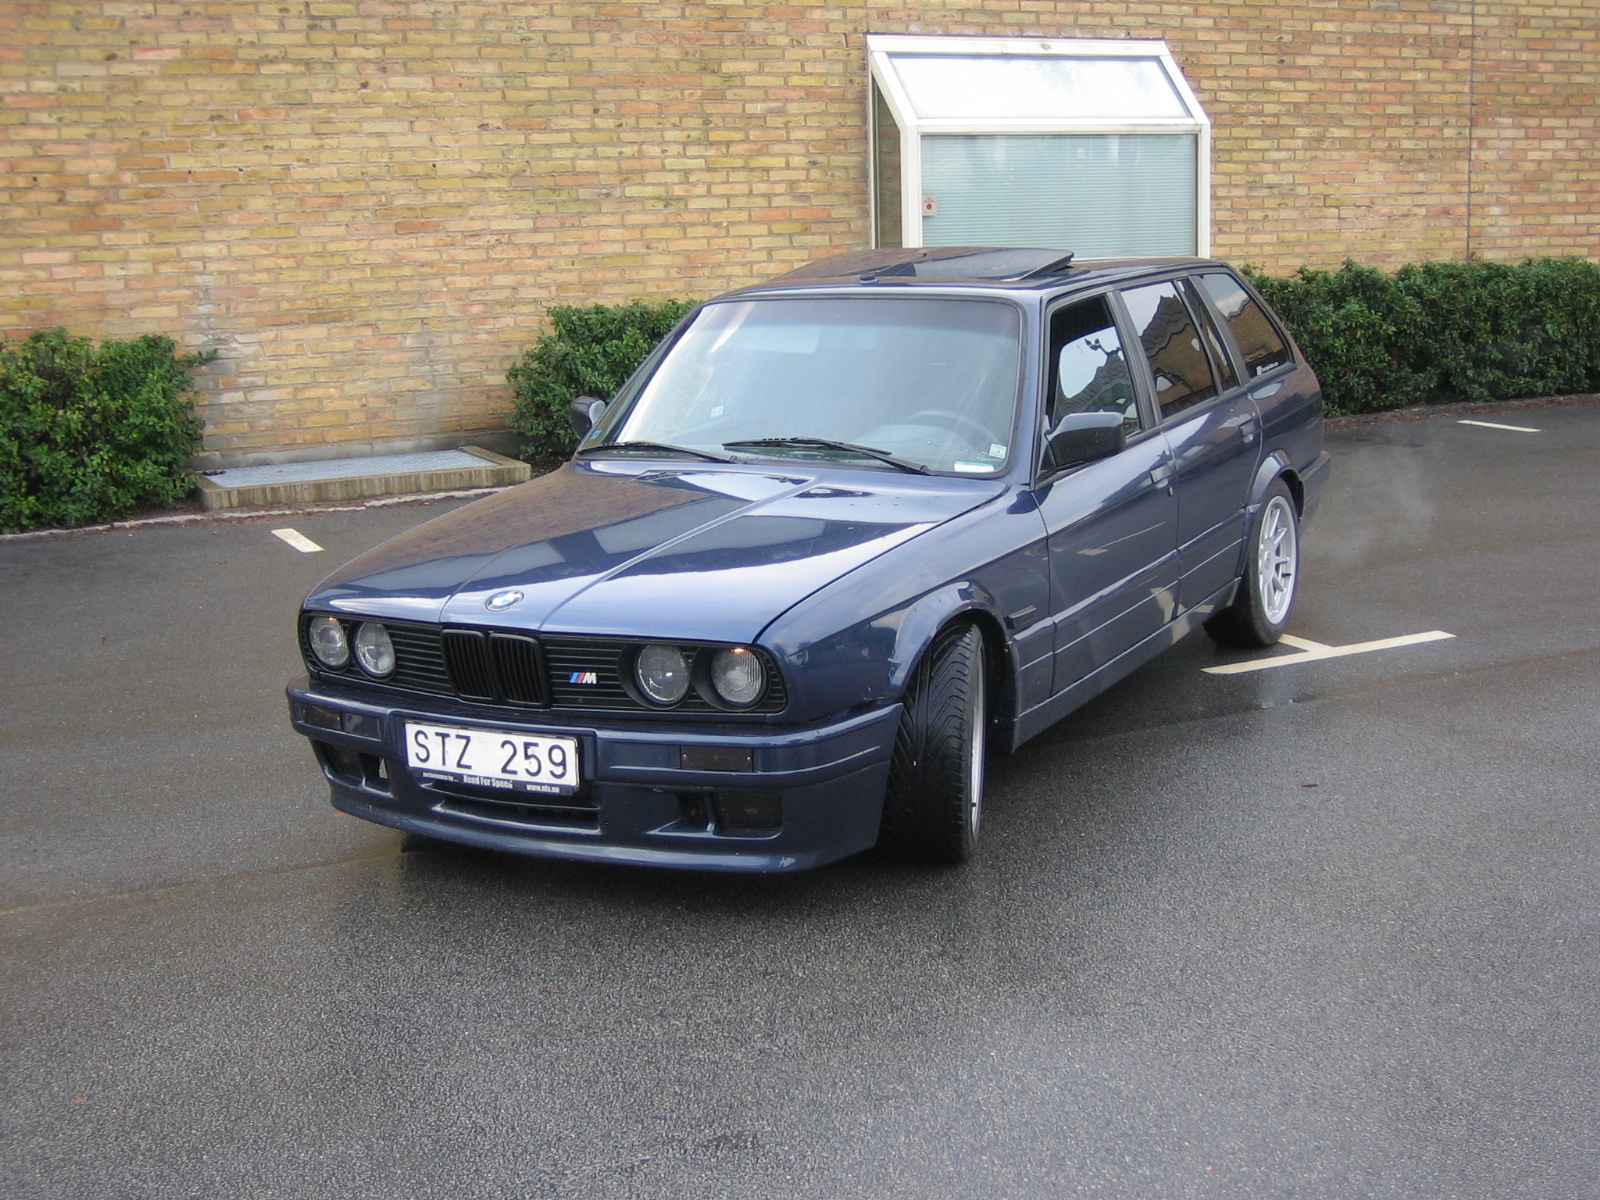 BMW 3 series 325ix 1991 photo - 4